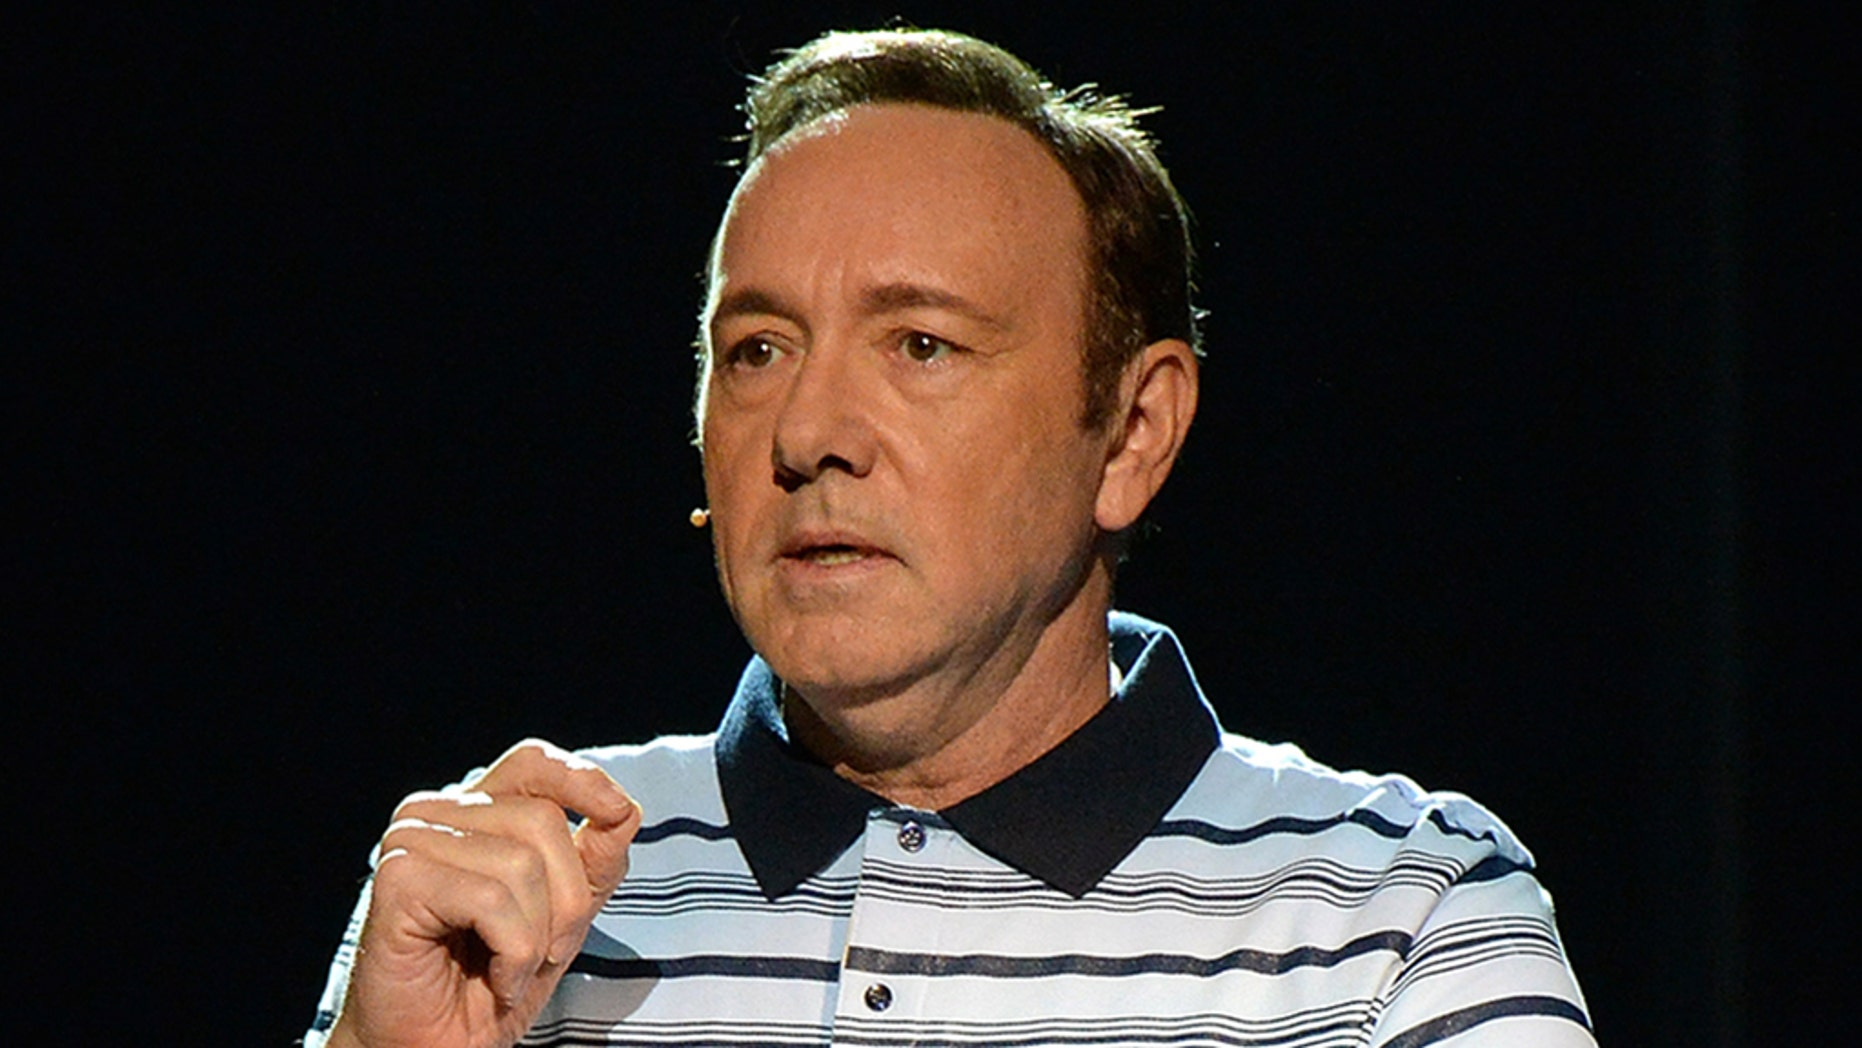 Kevin Spacey, wearing a